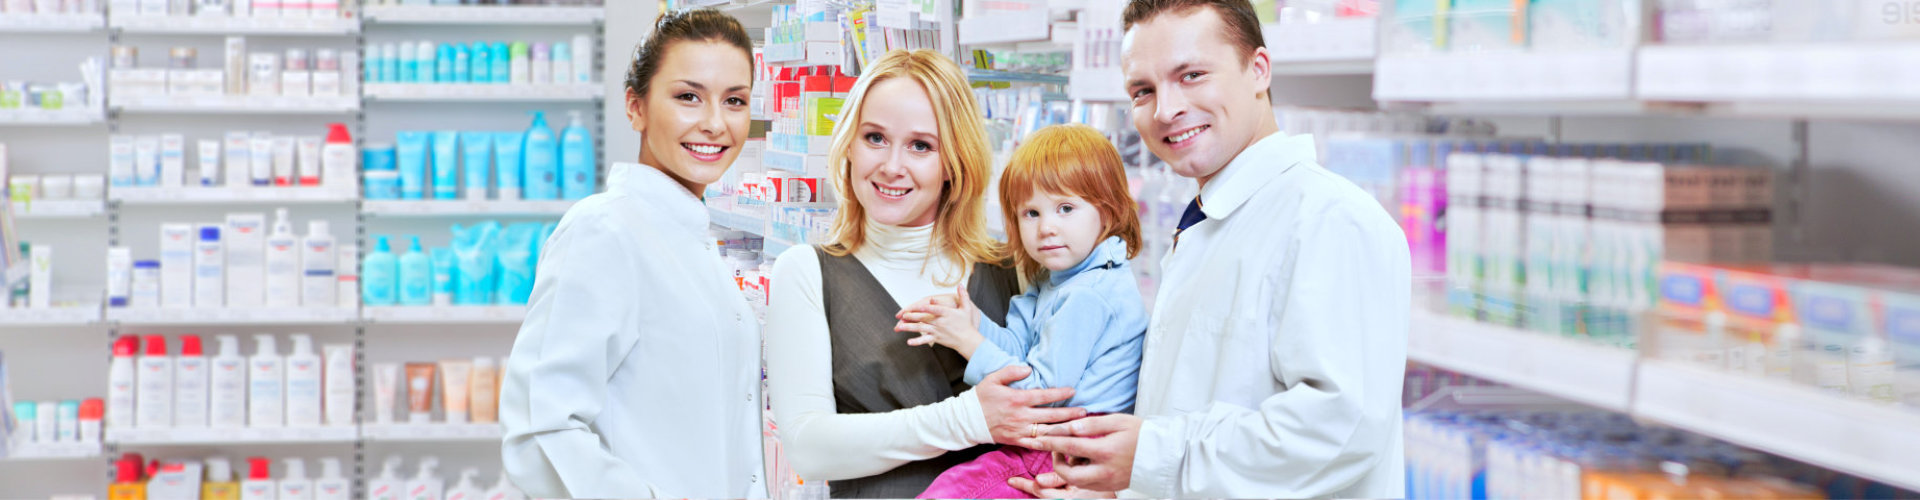 pharmacist and customers smiling